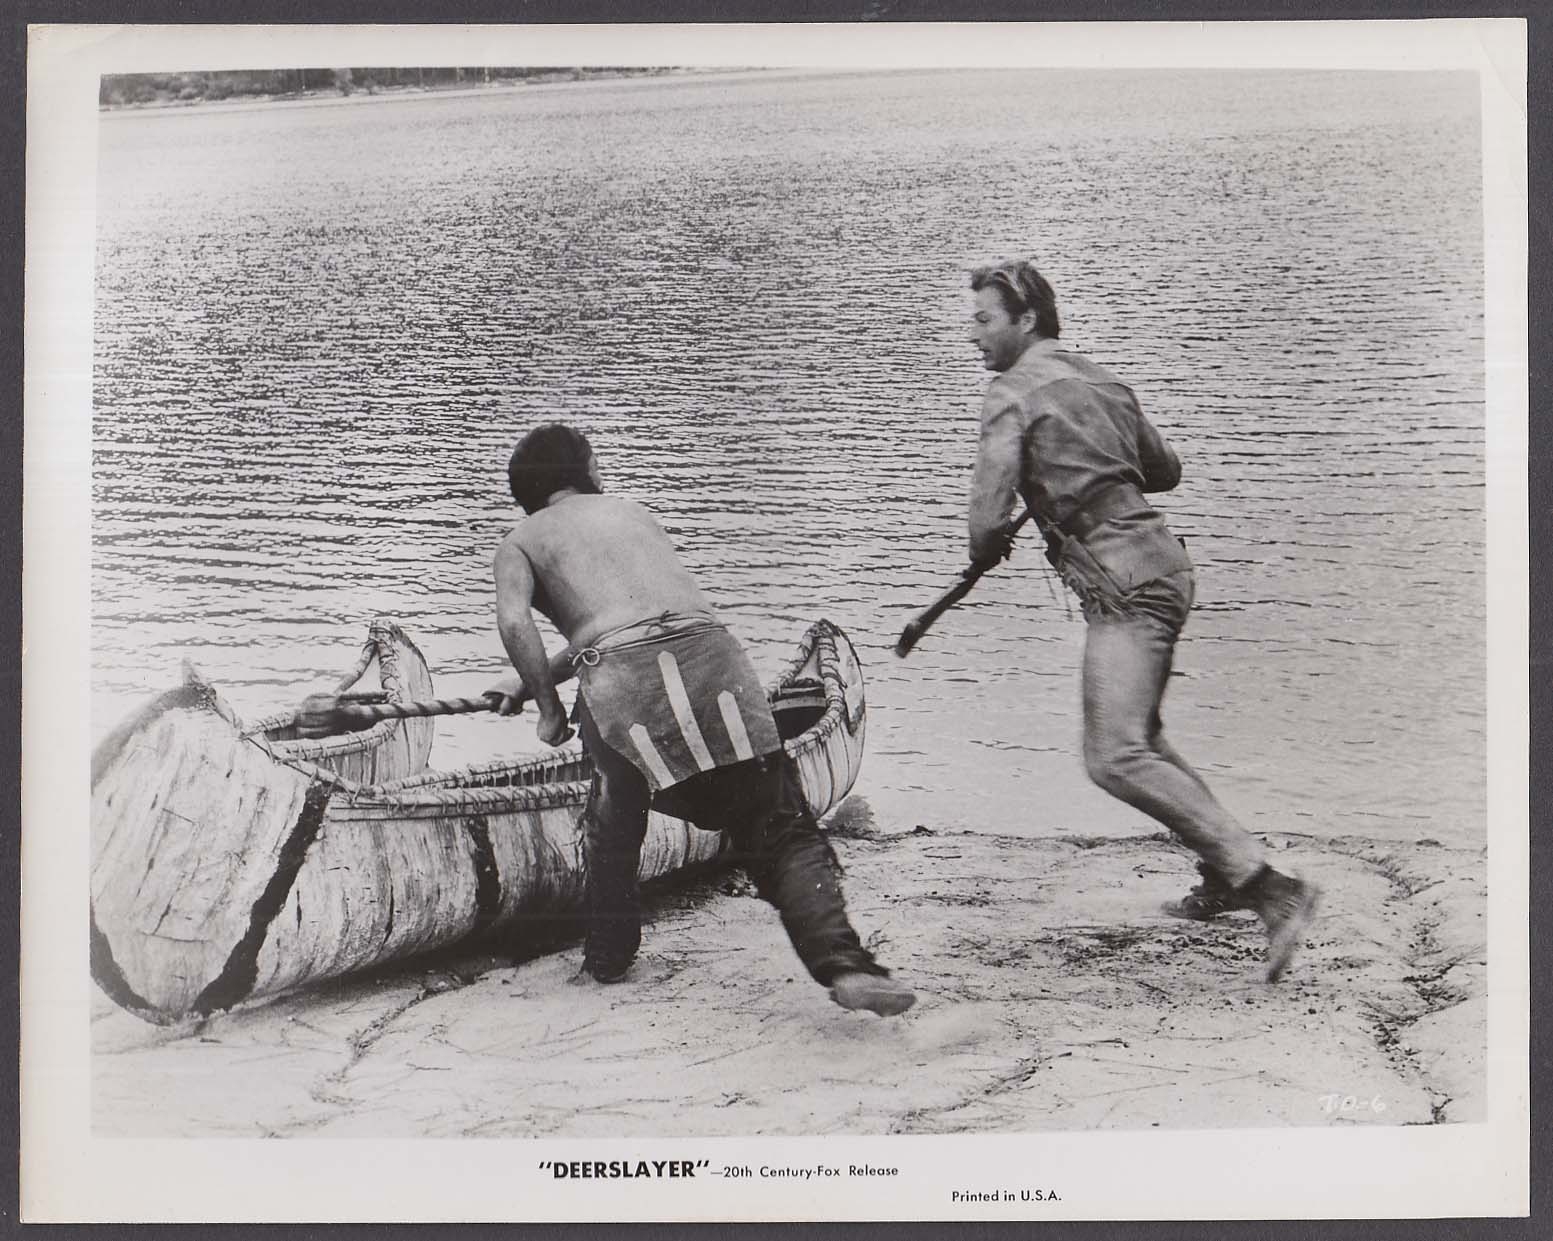 Lex Barker fights Huron Deerslayer 8x10 photo 1957